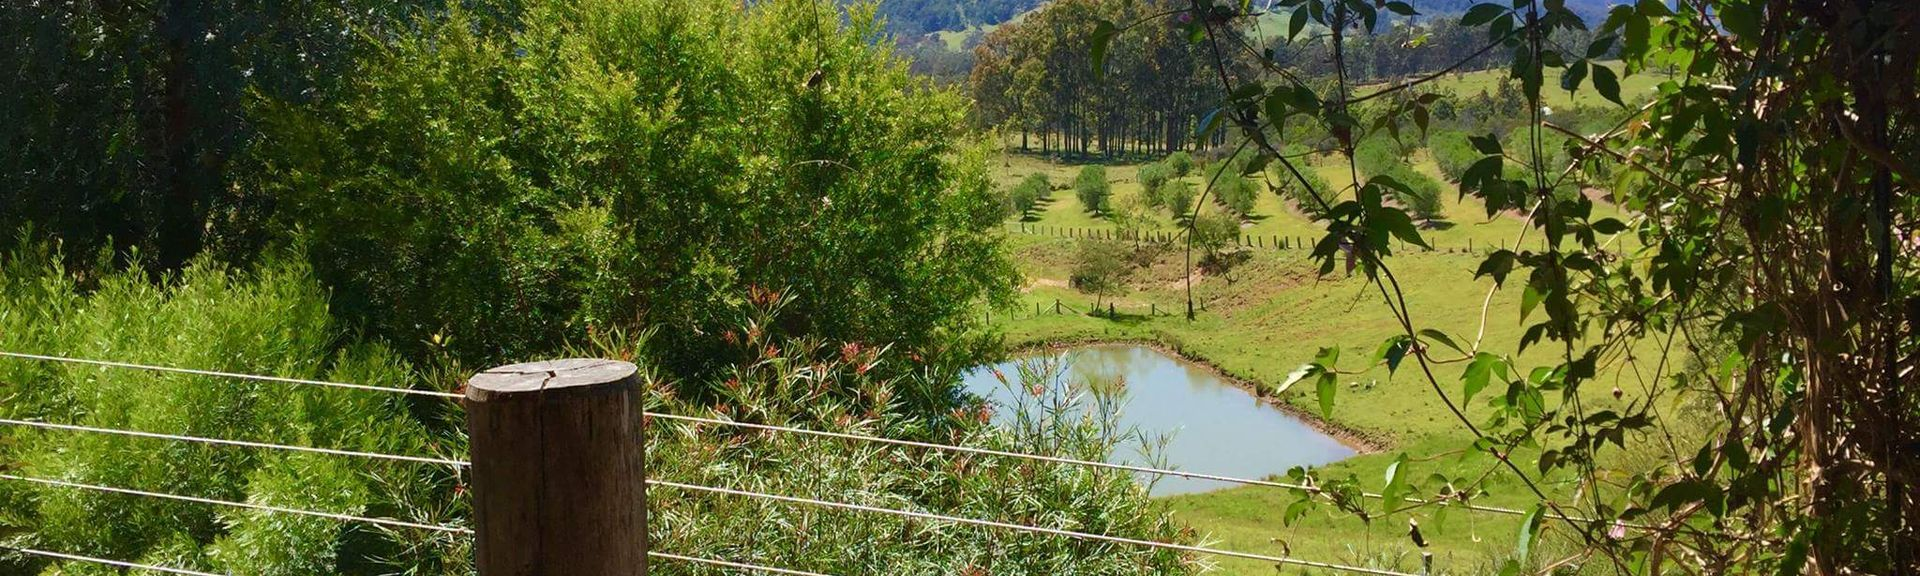 Wollombi, New South Wales, Australia